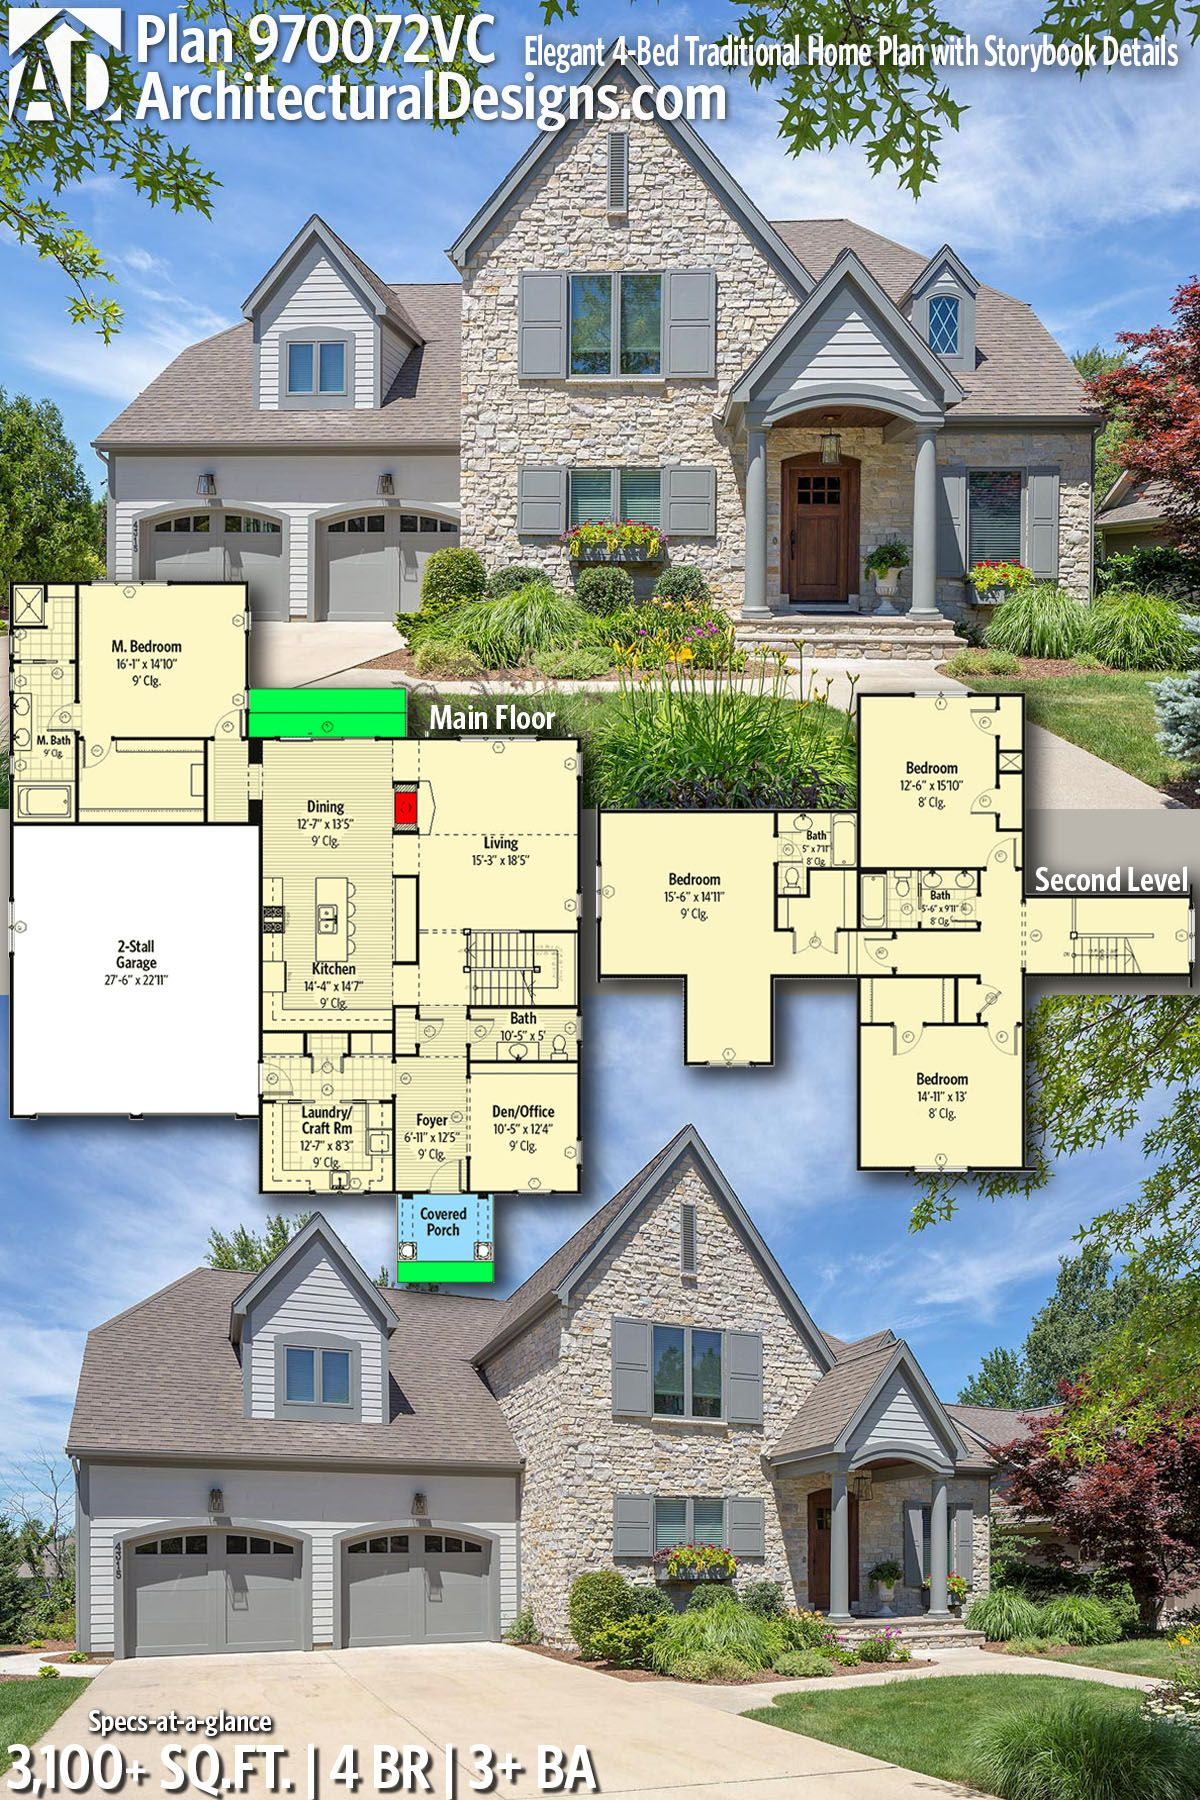 Plan 970072vc Elegant 4 Bed Traditional Home Plan With Storybook